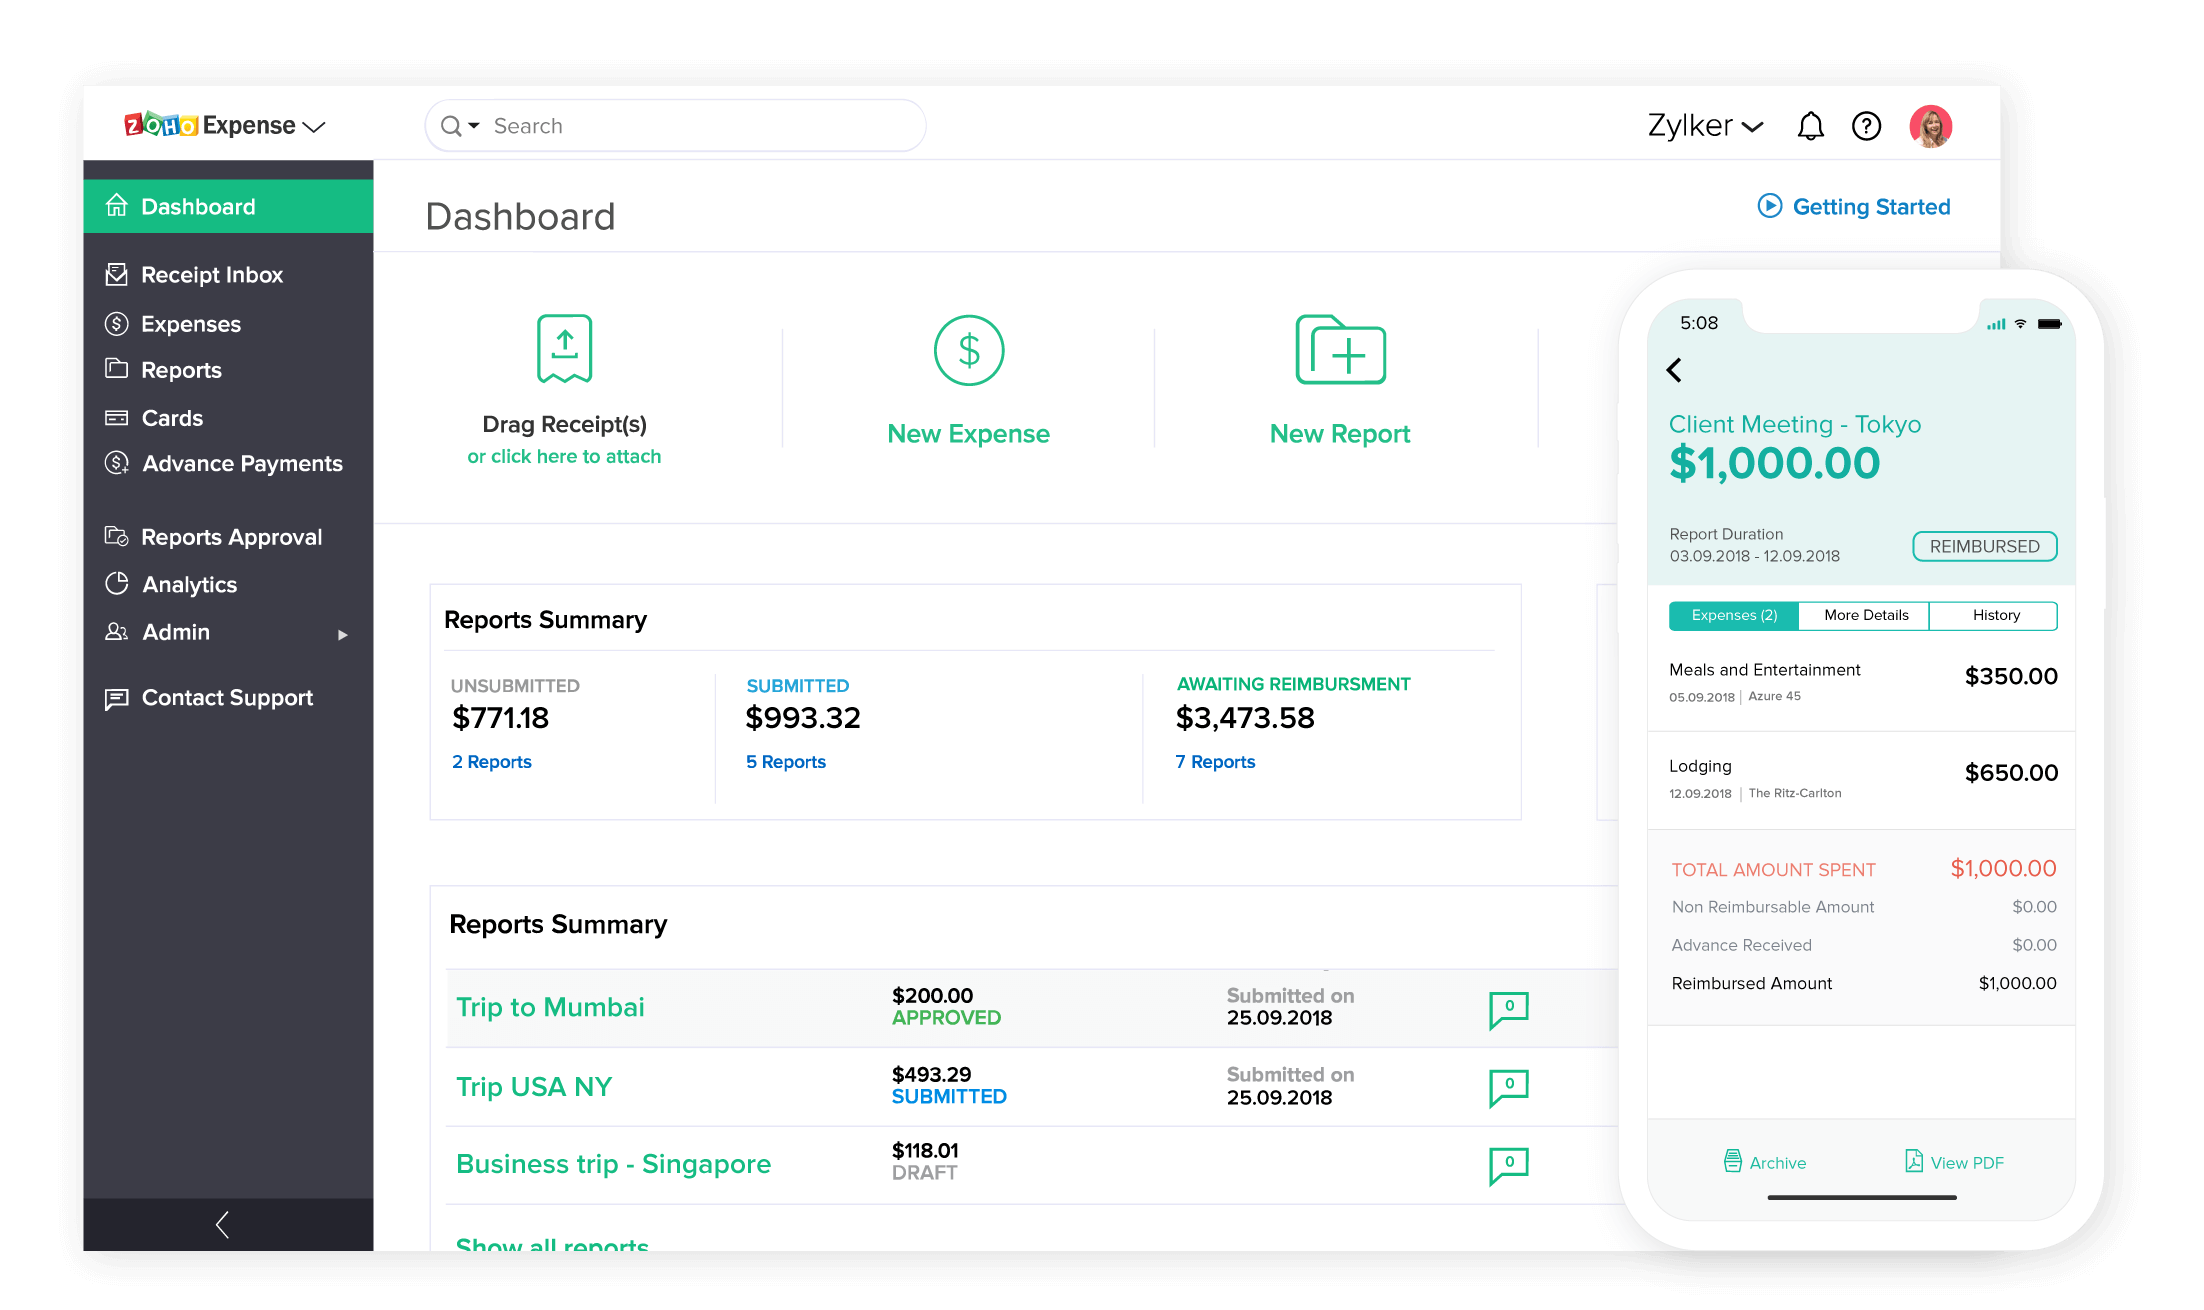 Online Expense Report Software – Zoho Expense